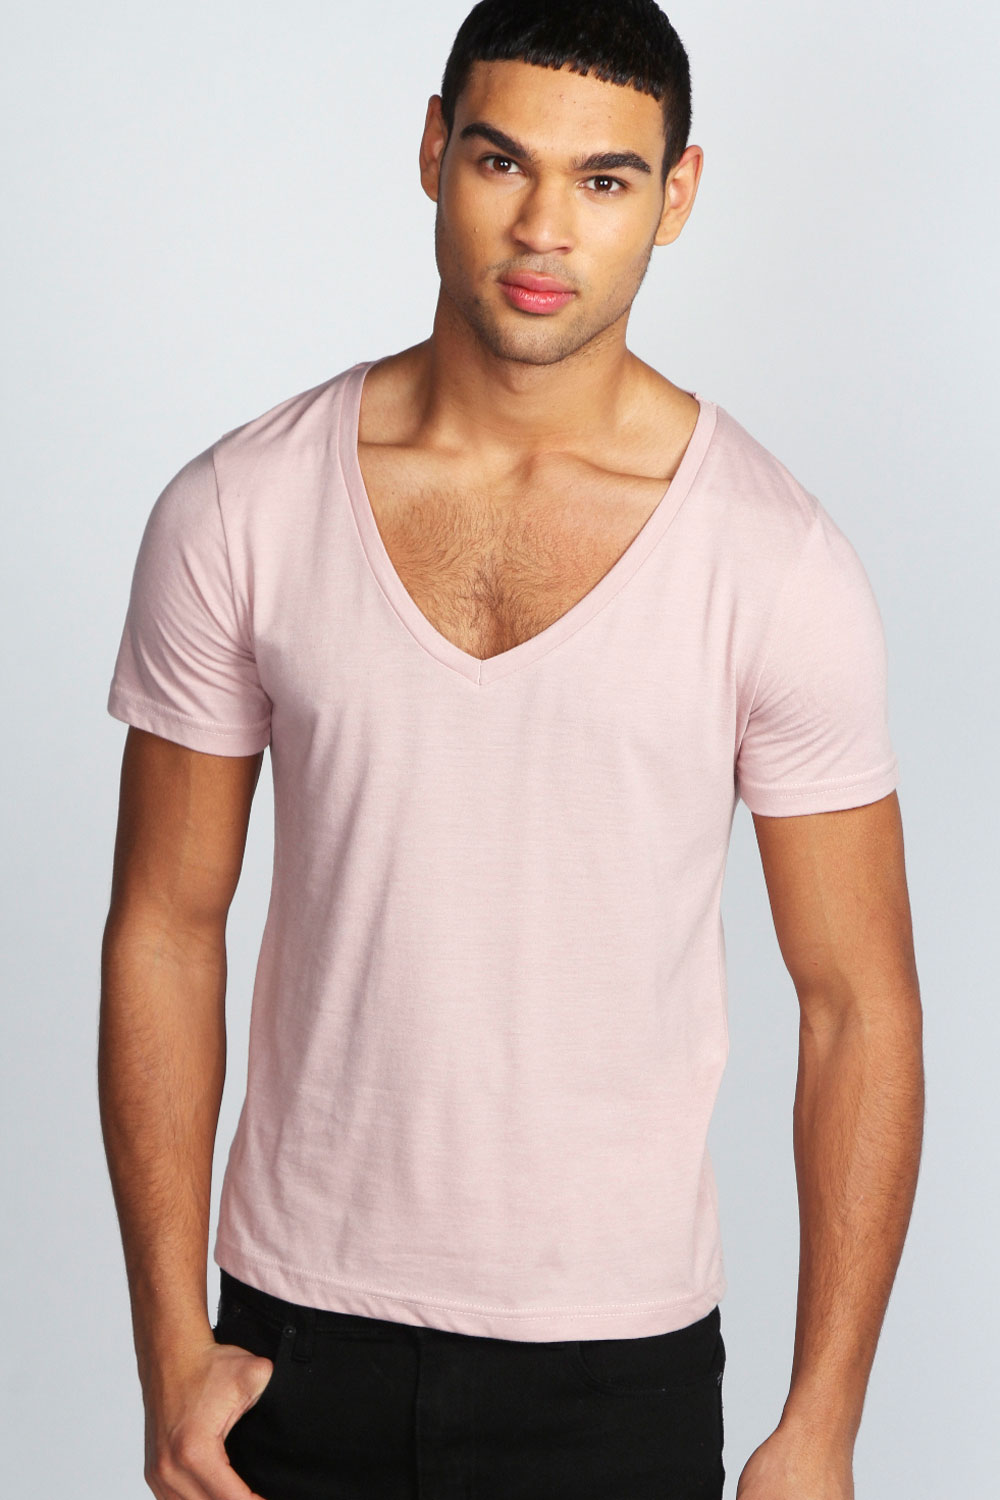 The V-neck, loved for how it effortlessly draws the eye down and creates the perfect cleavage for necklace layering. With our signature Rank & Style algorithm, we have rounded up the Top 10 V-neck white tees out there for every activity and occasion.